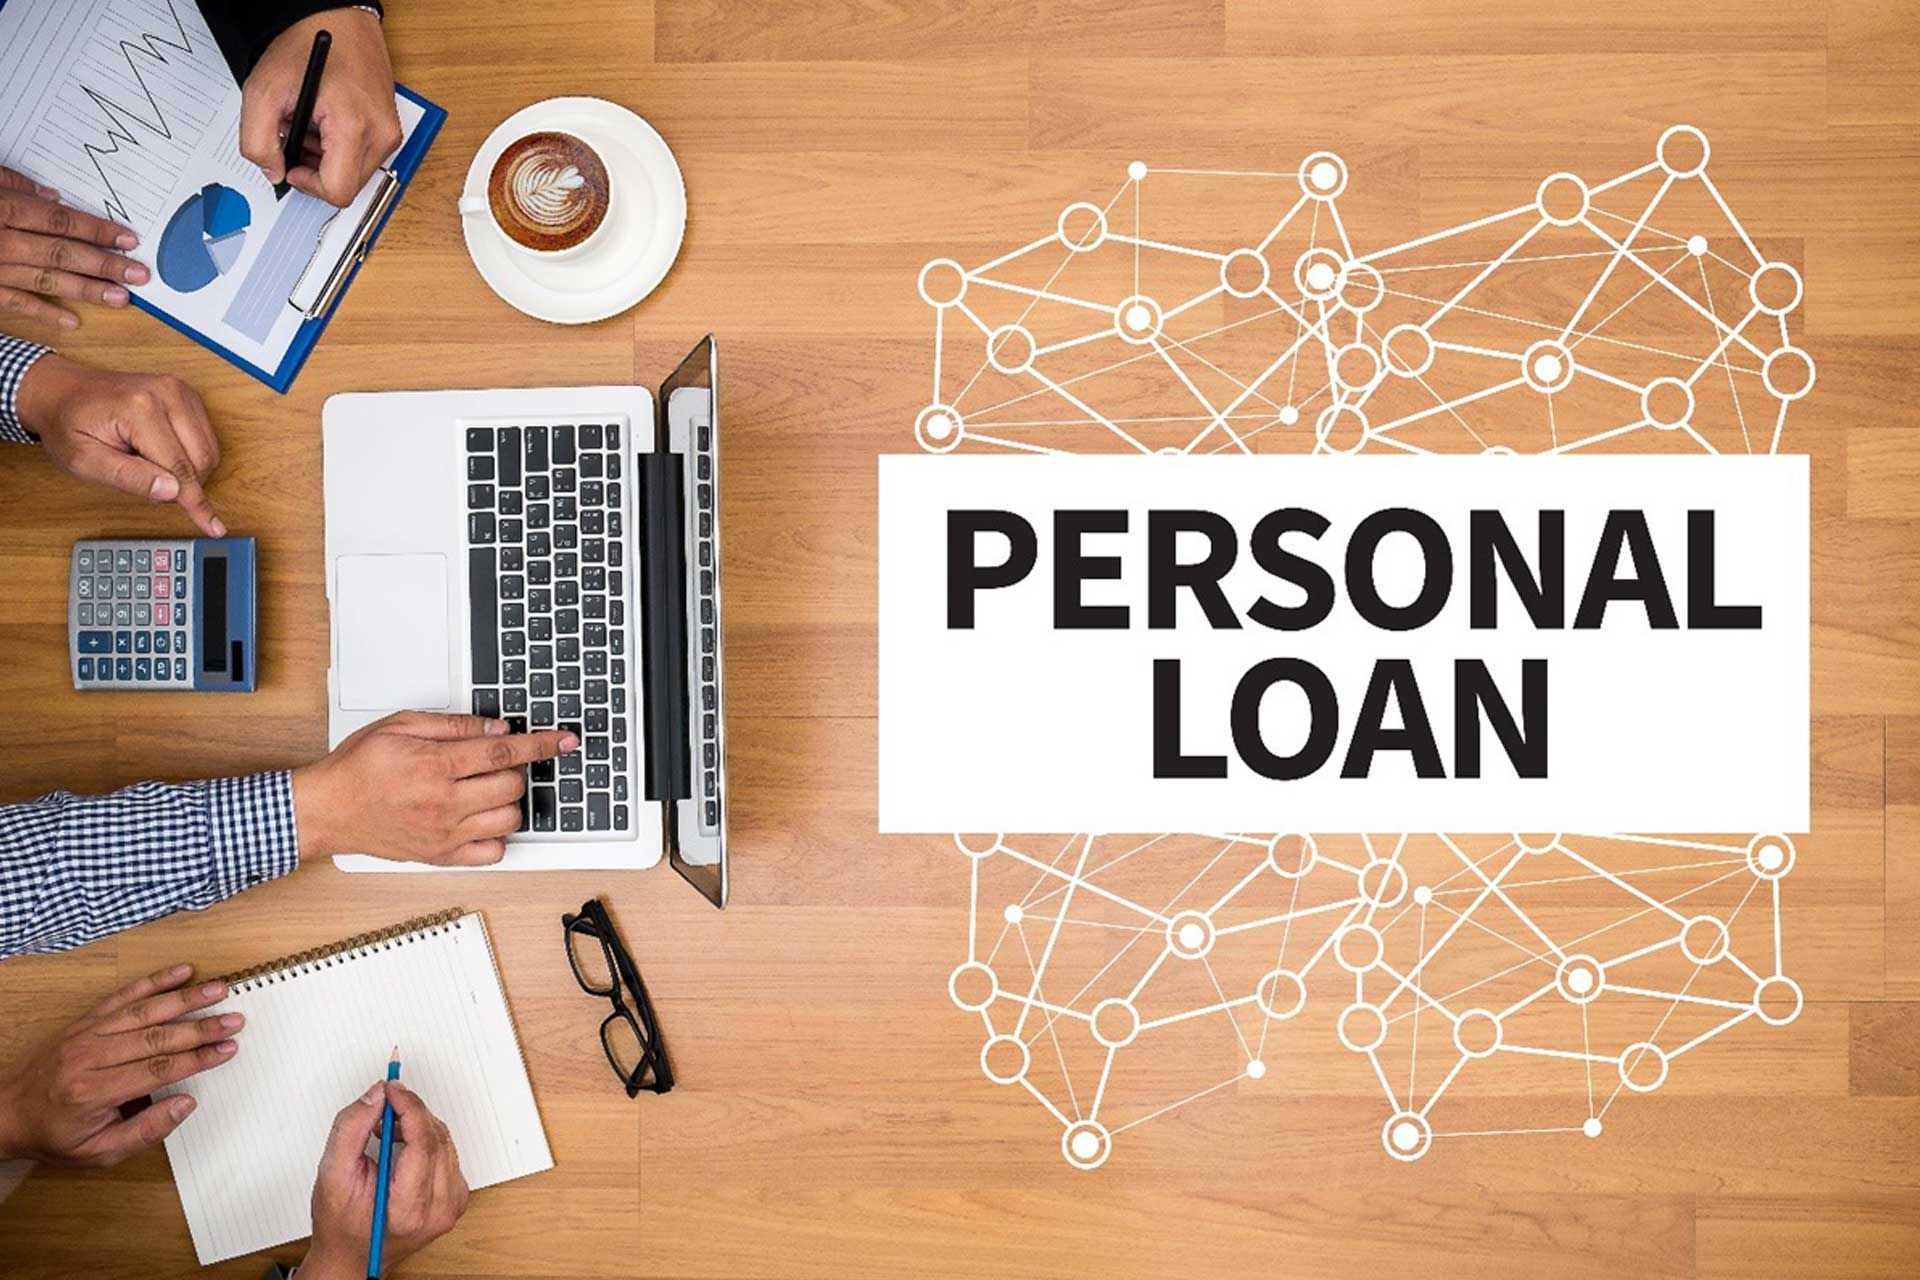 How Can You Use A Personal Loan?